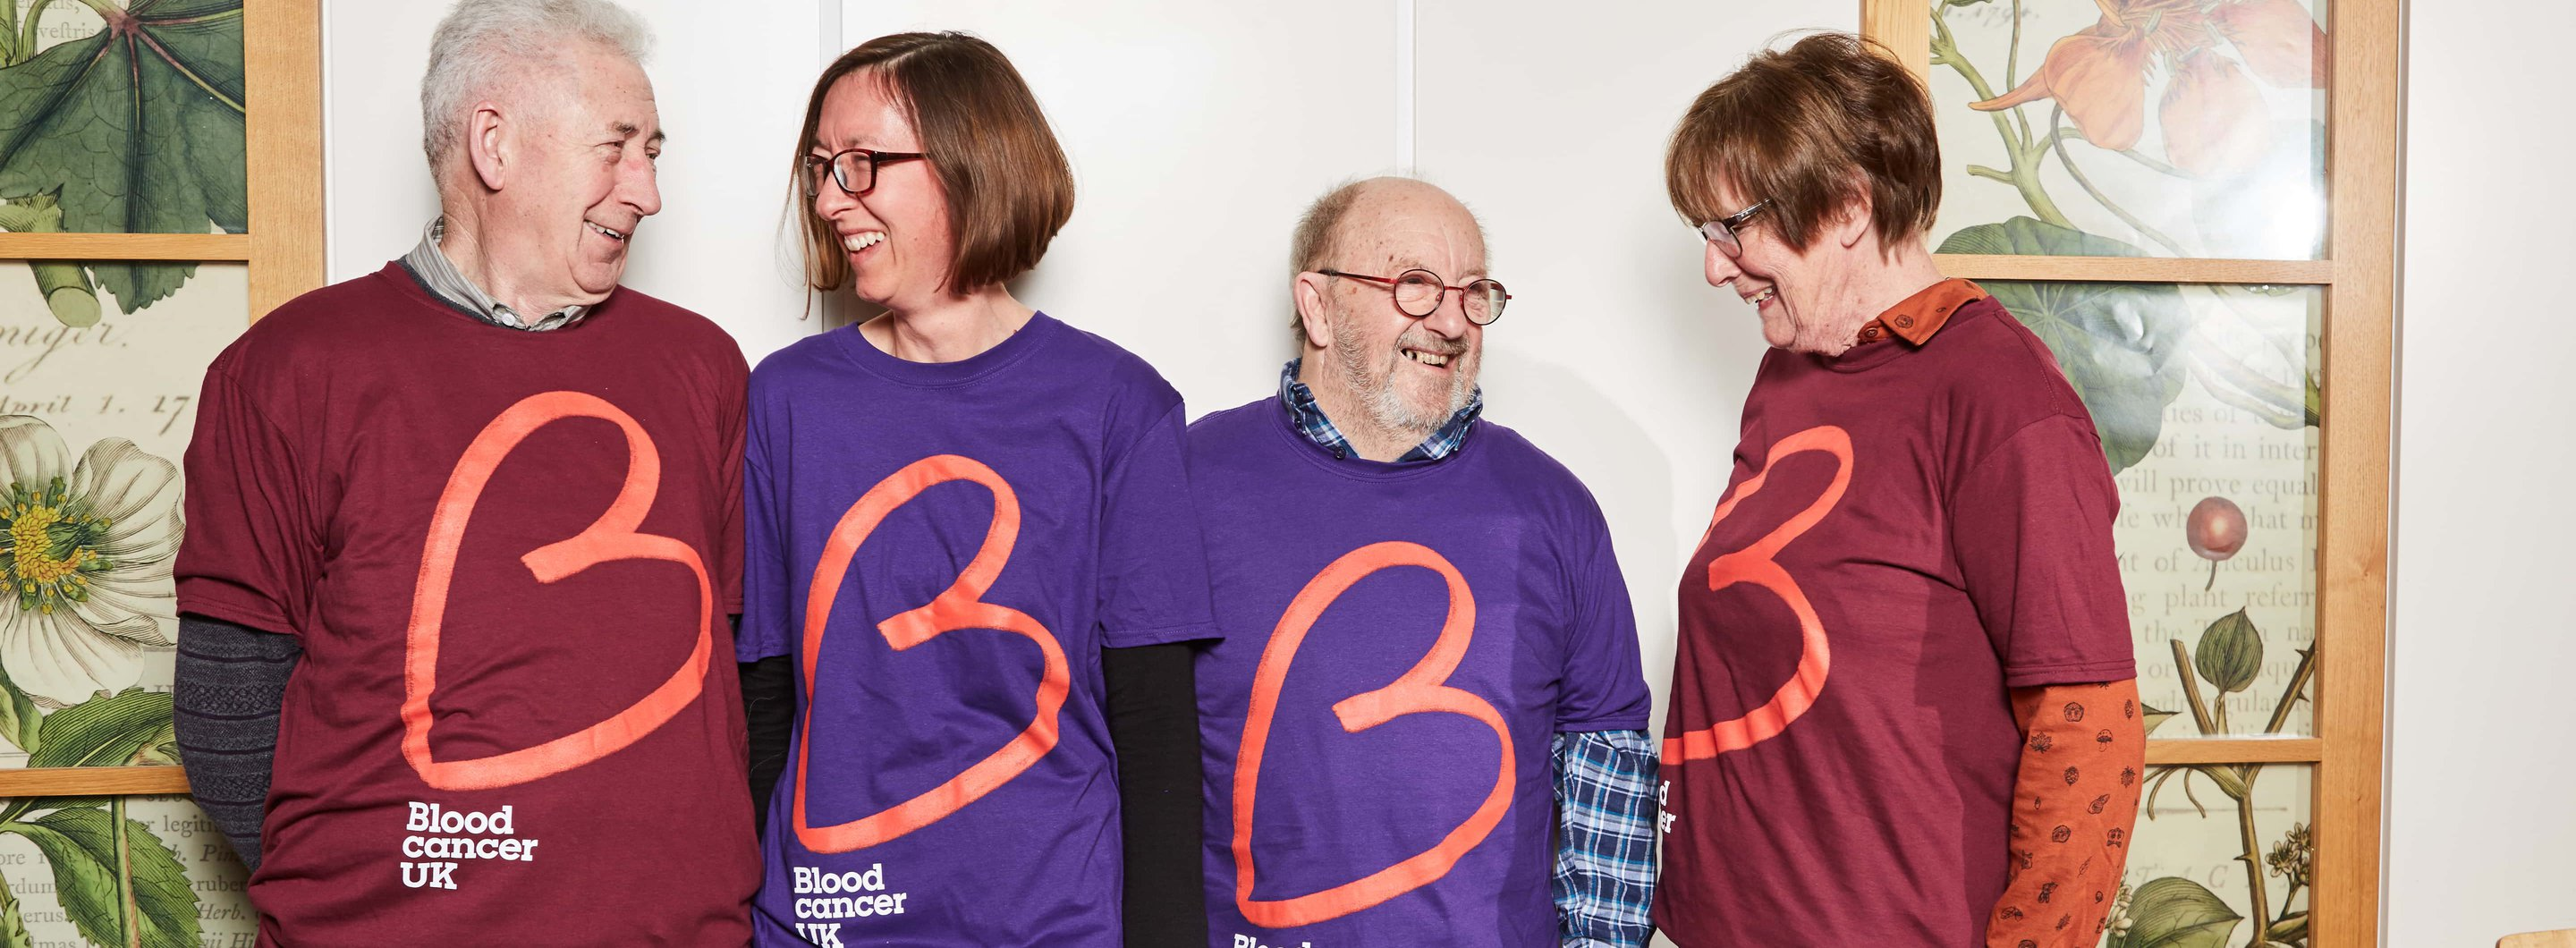 RS1598_branded-clothing-bloodcanceruk-logo-people-group_5.jpg